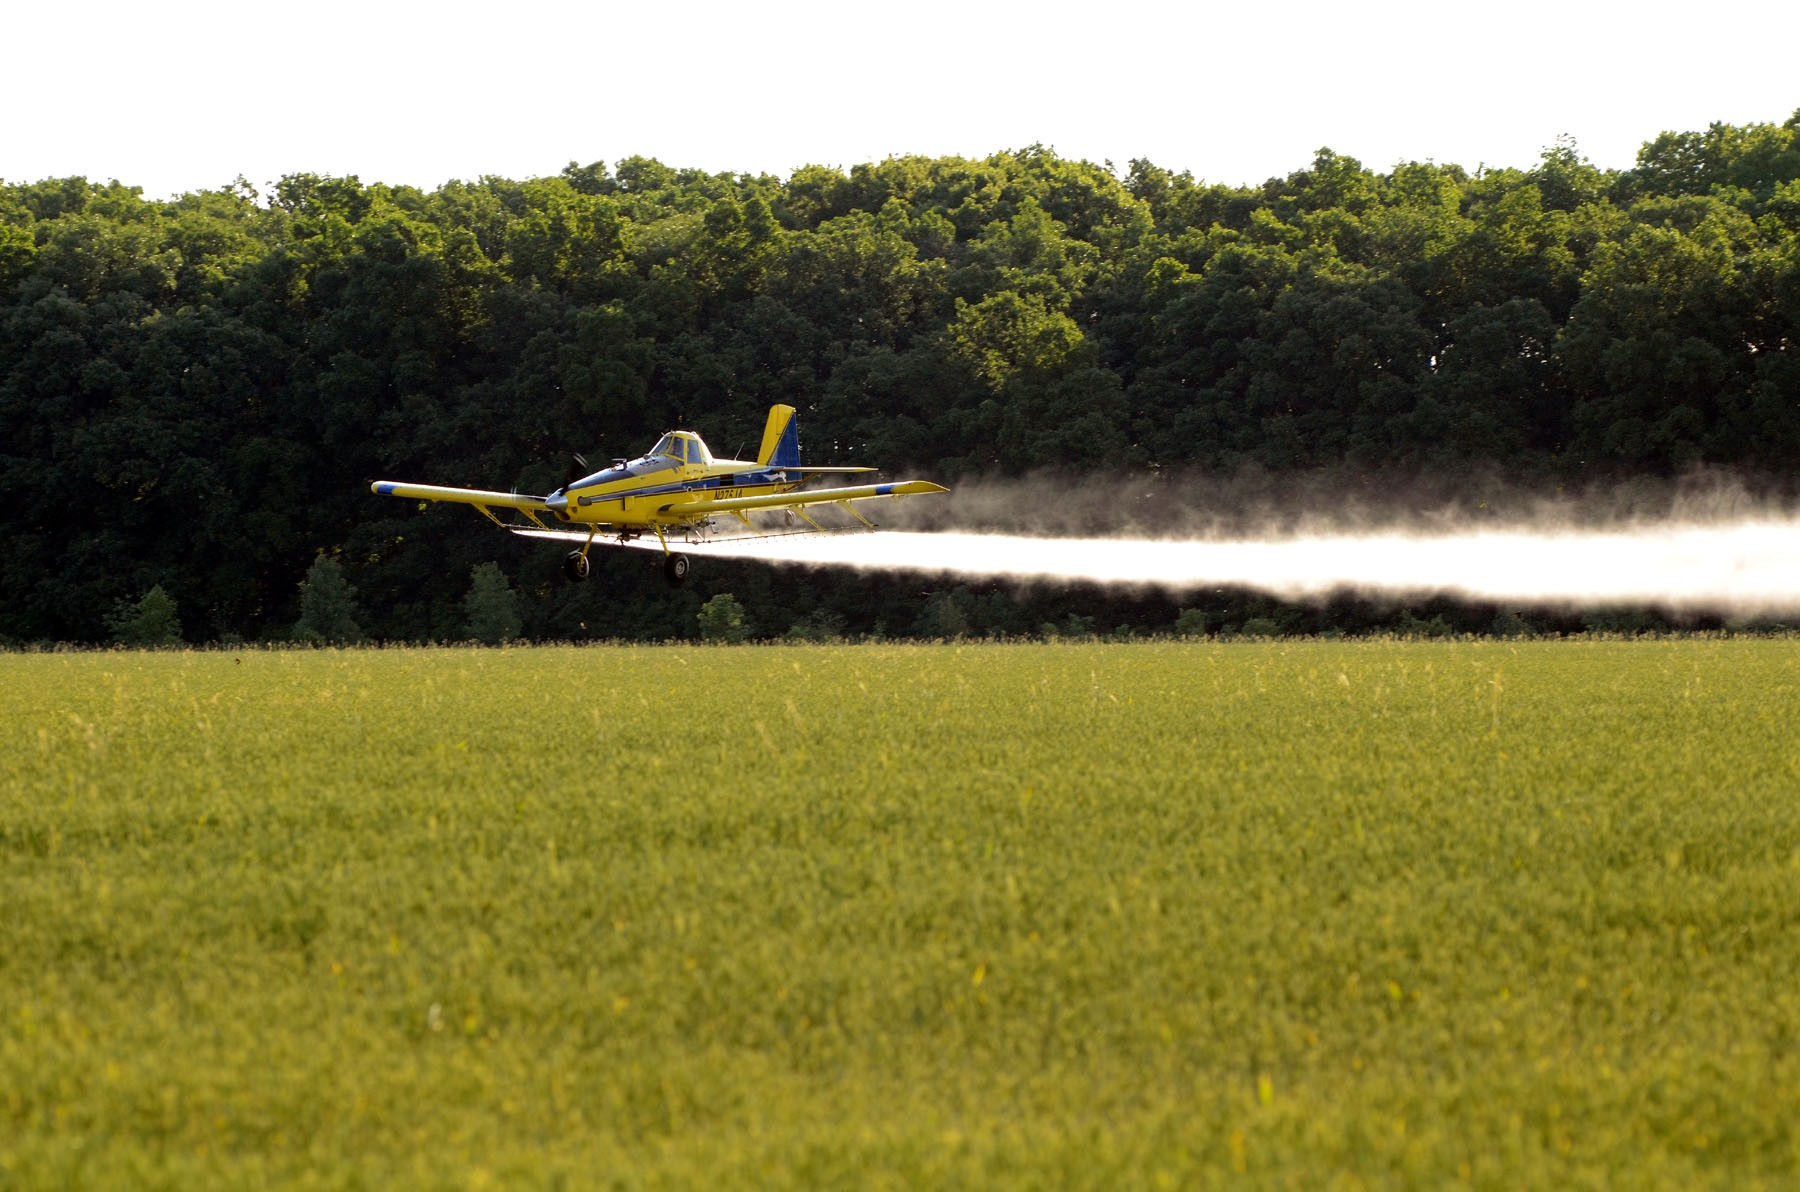 An airplane applies crop protection materials at a farm in Curtice. (Press file photo by Ken Grosjean)